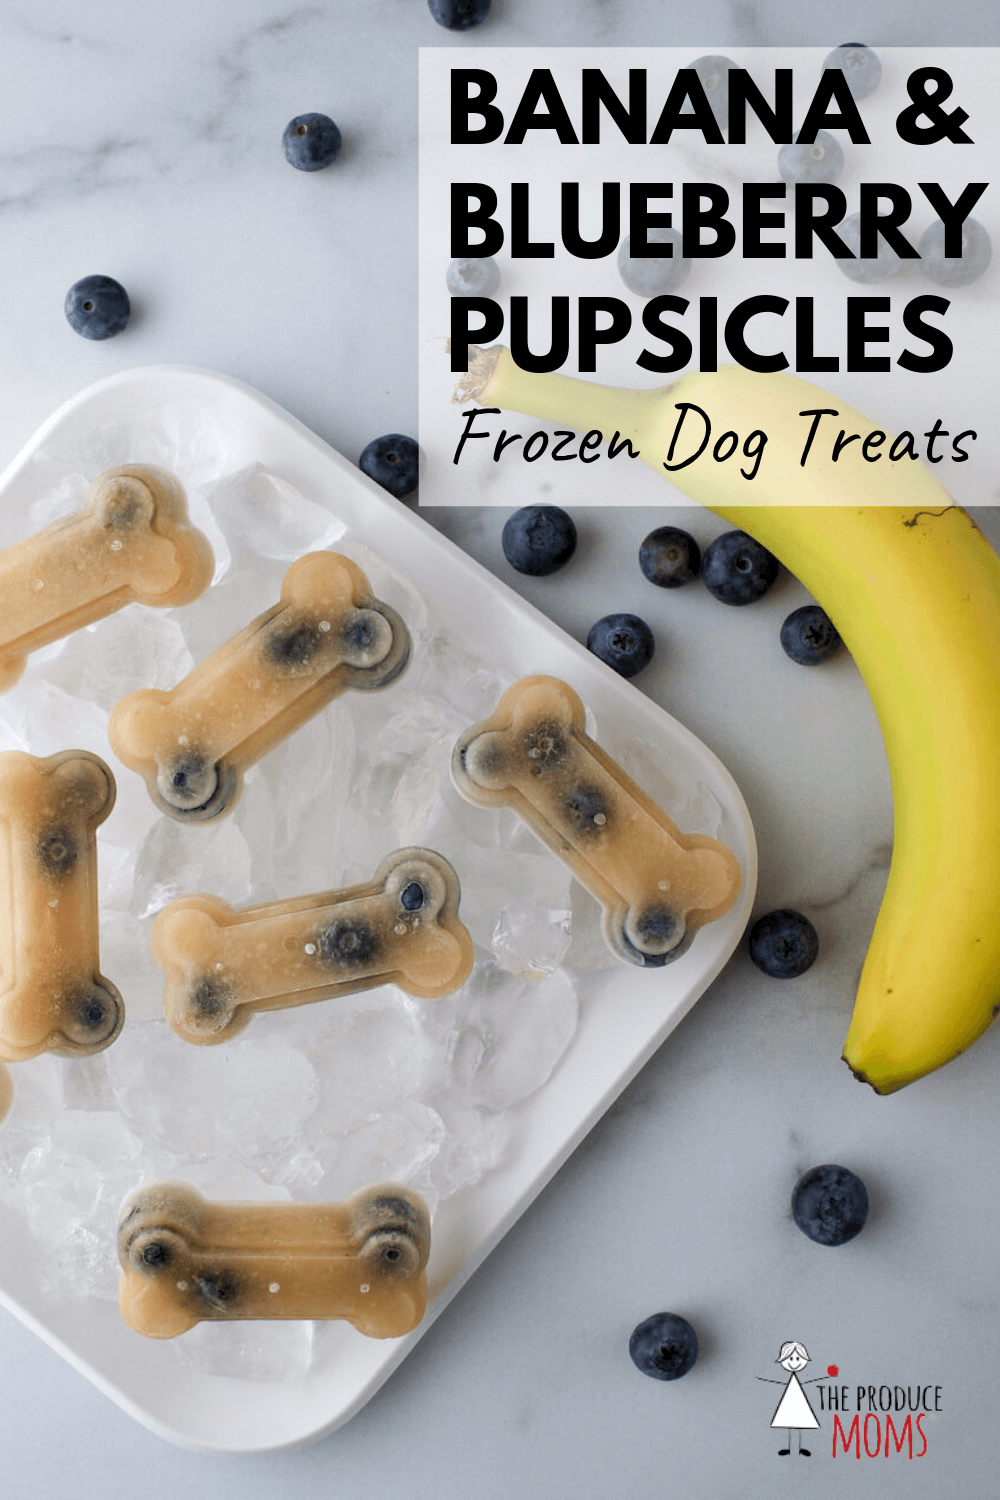 Banana and Blueberry Pupsicles